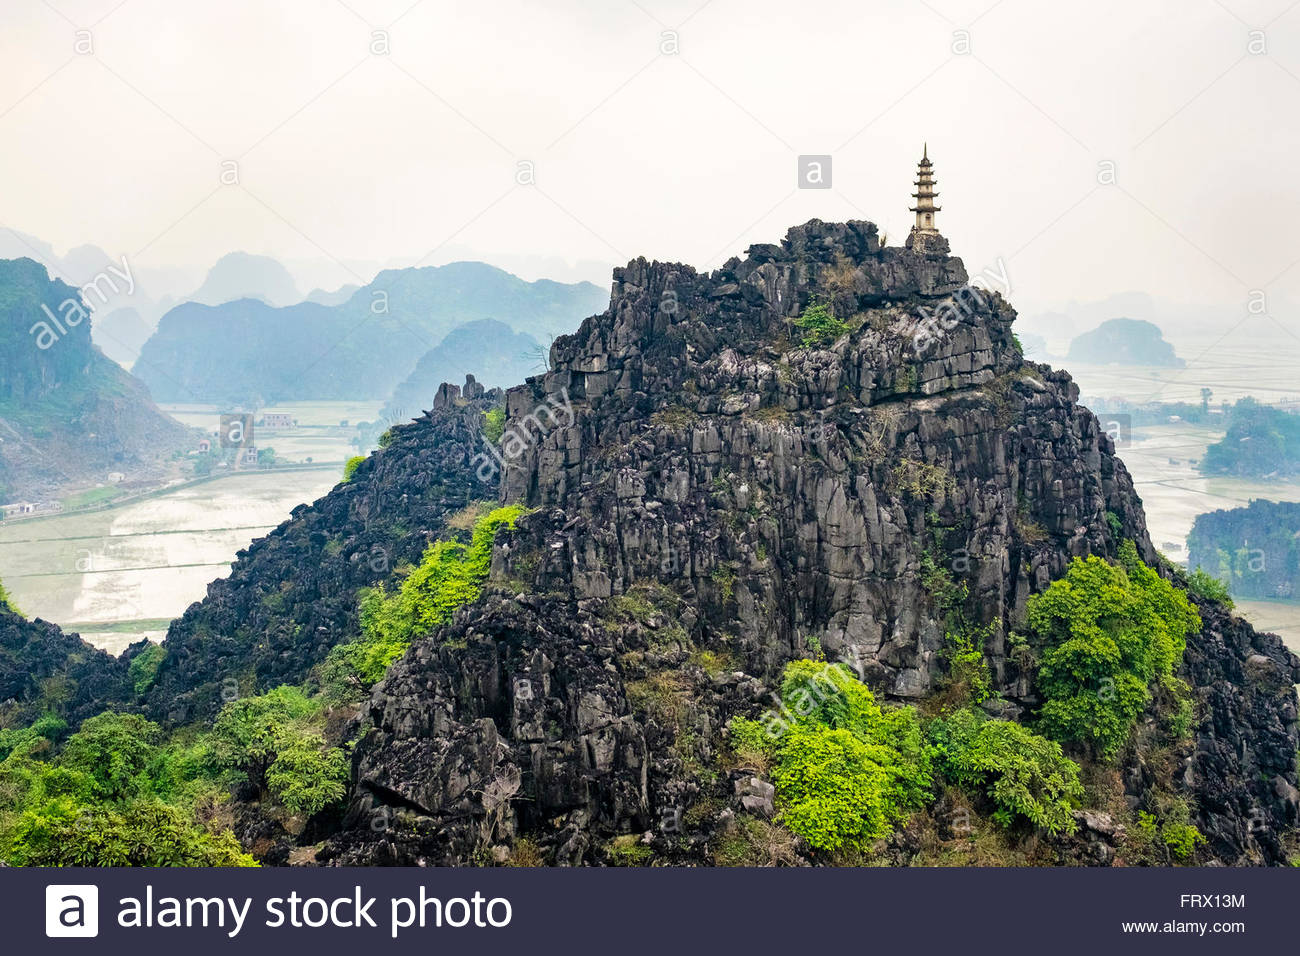 Karst mountain landscape at Hang Mua, Ninh Hai, Hoa Lu District, Ninh Binh Province, Vietnam - Stock Image